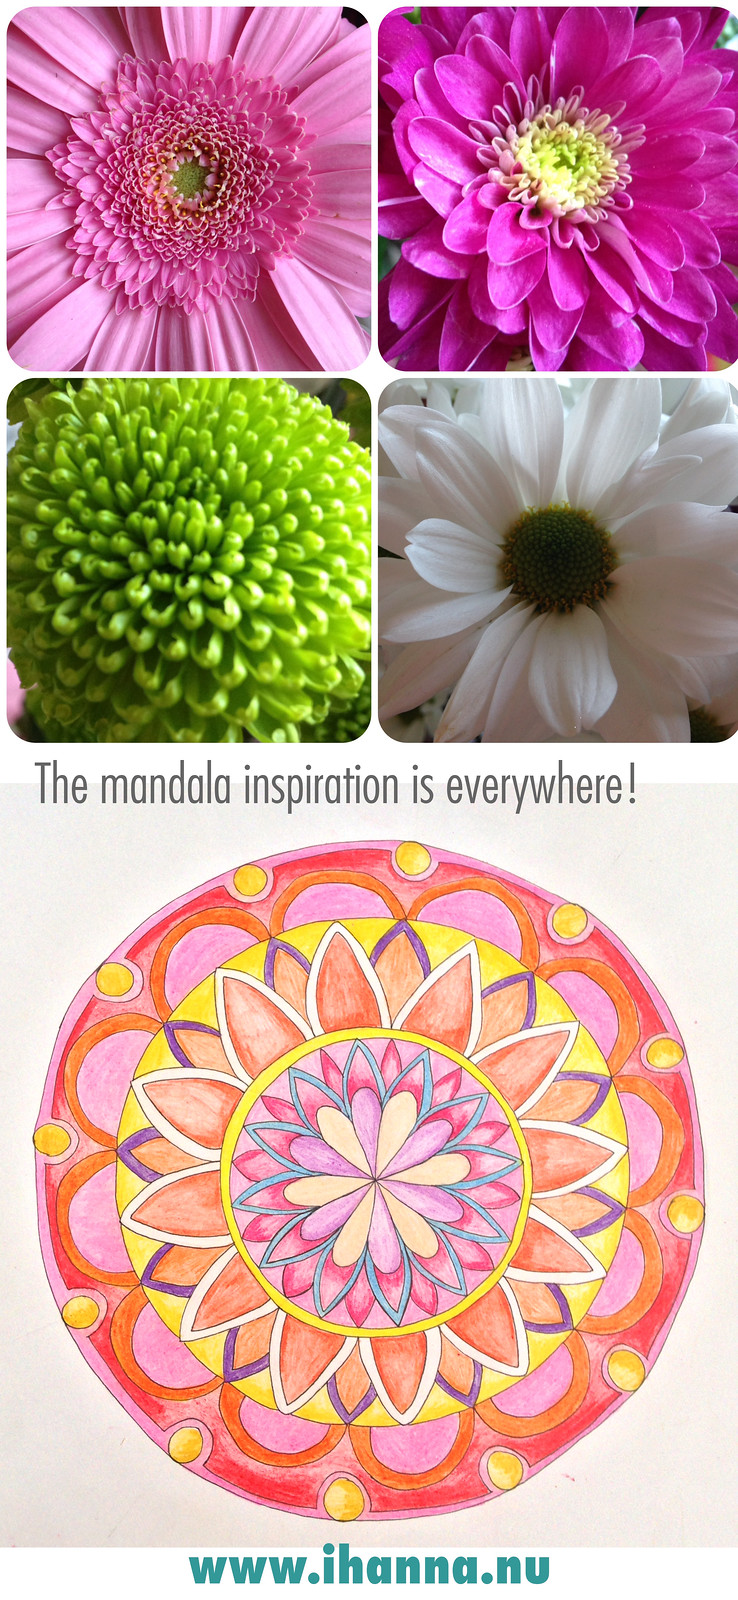 Drawing a mandala and finding inspiration - , blog post full of inspiration by @ihanna #mandalas